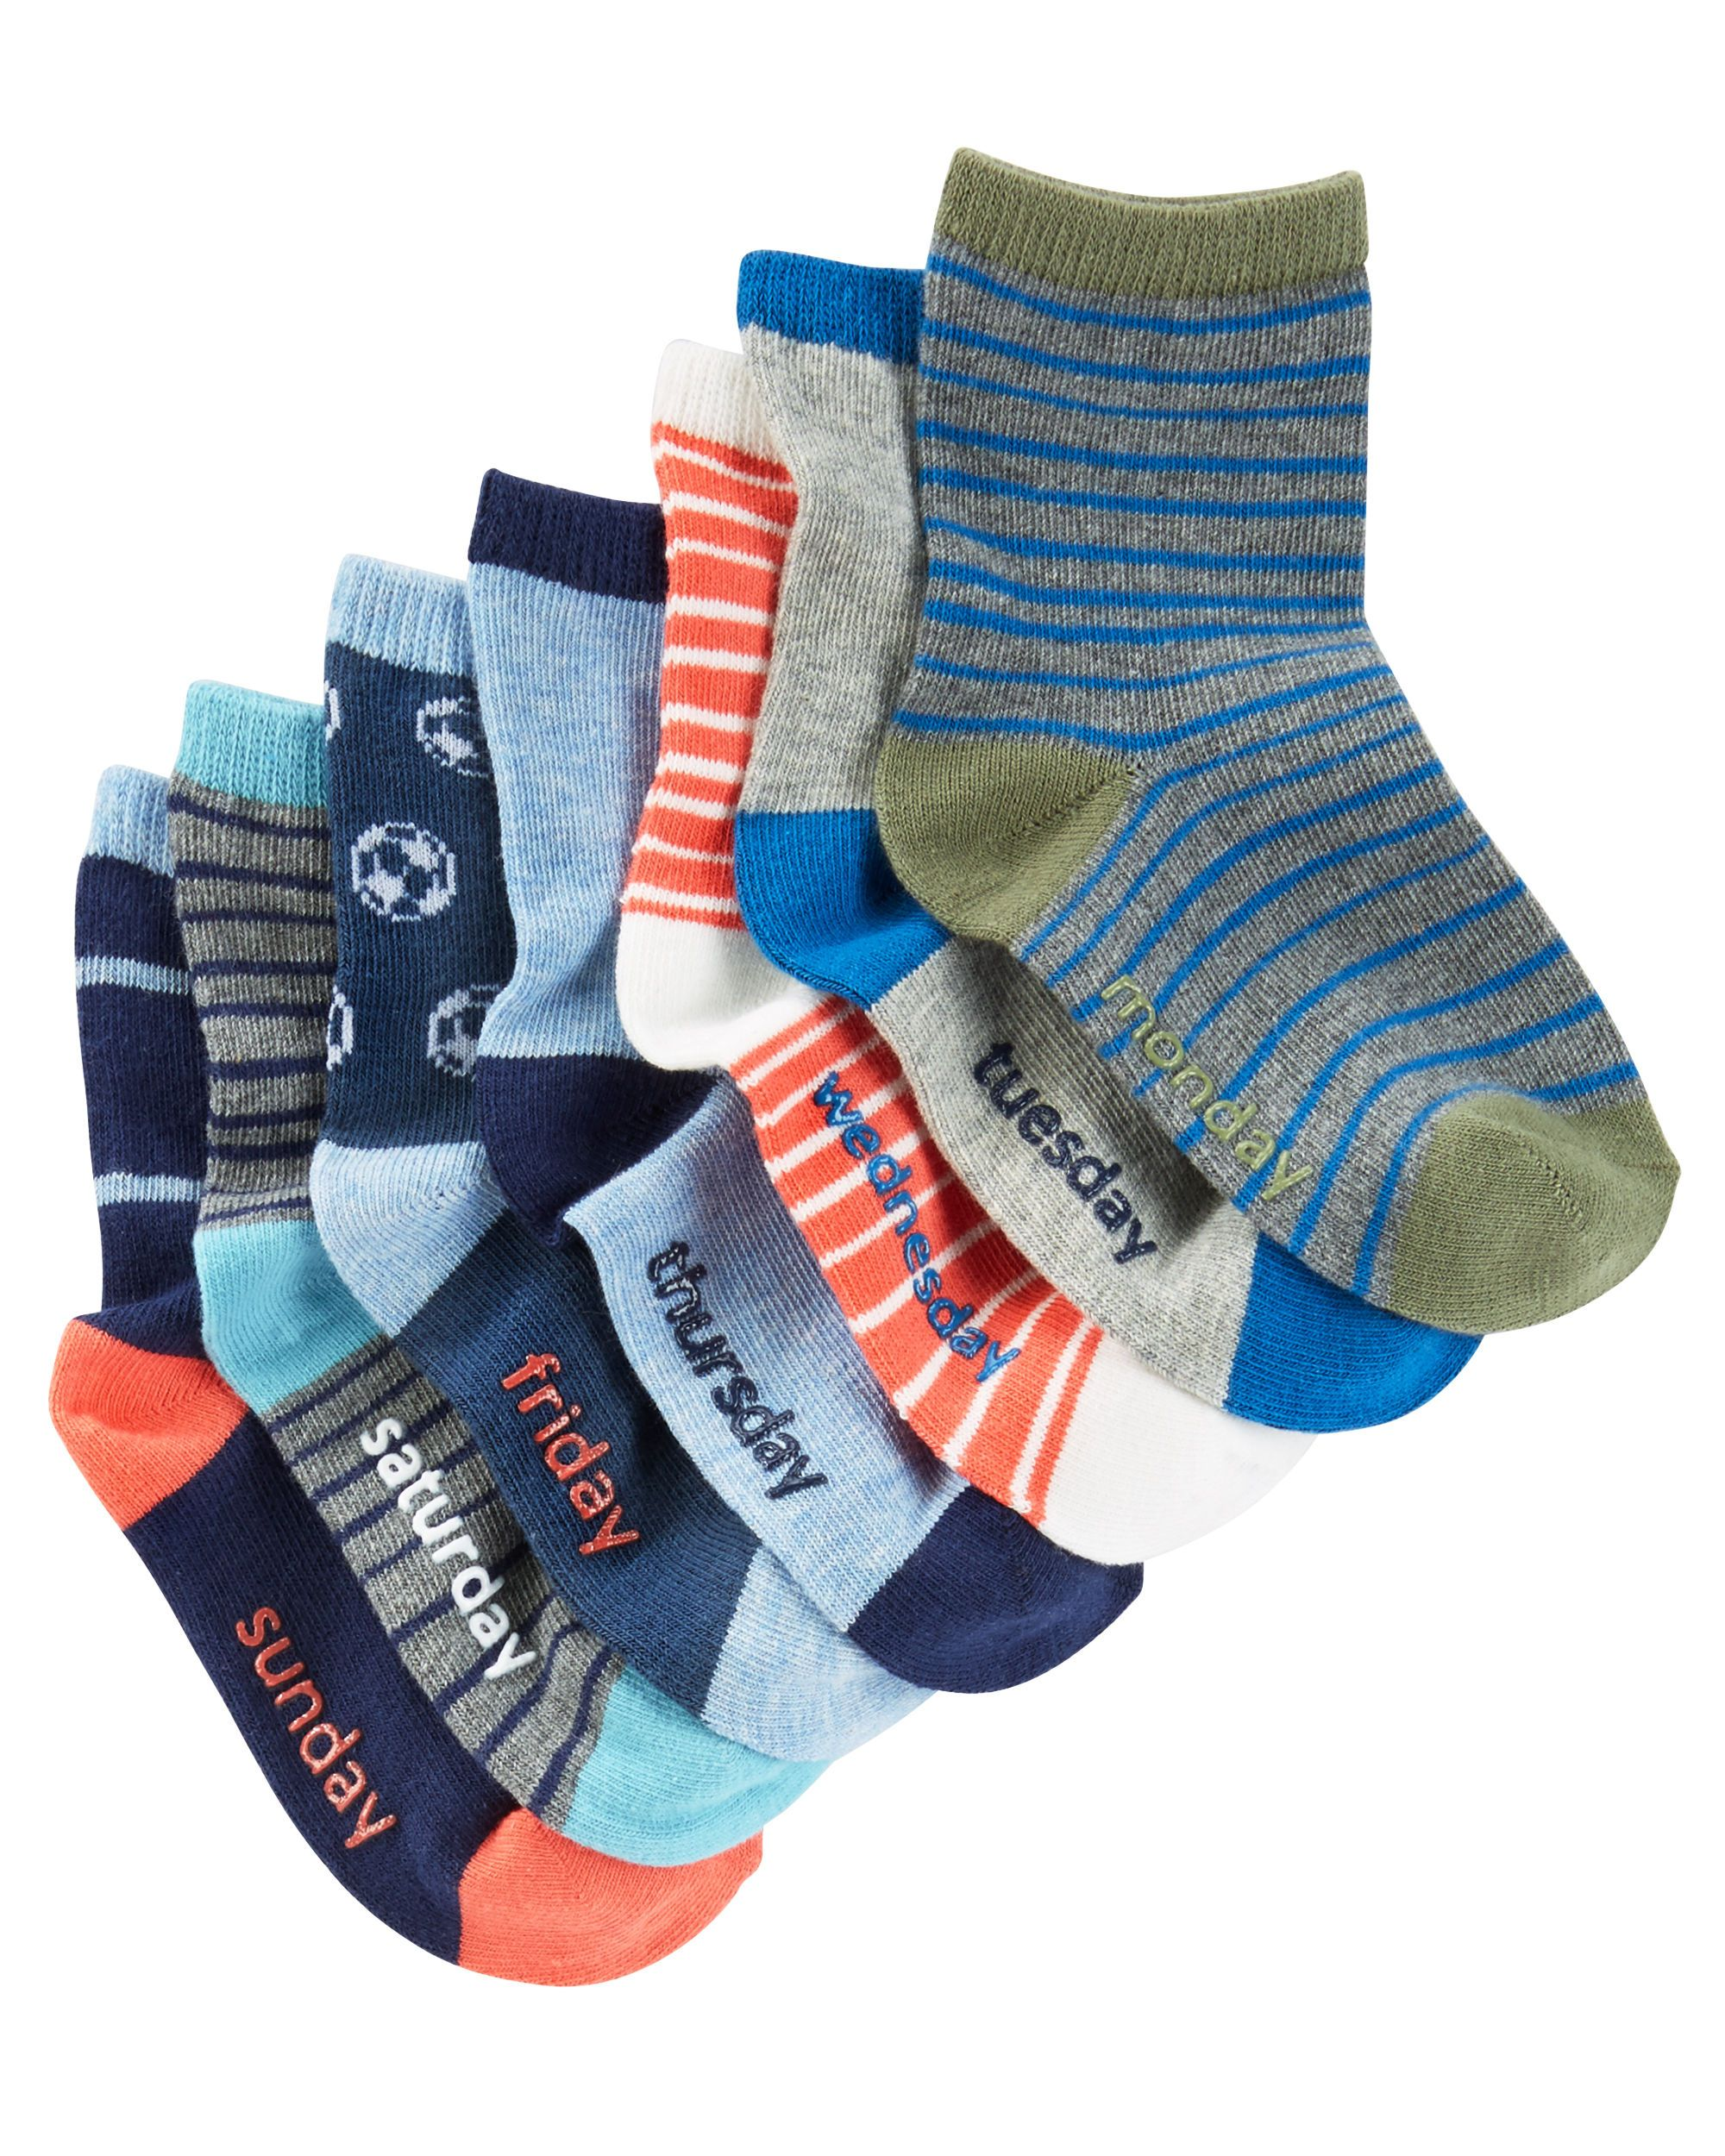 7 Pack Weekday Crew Socks